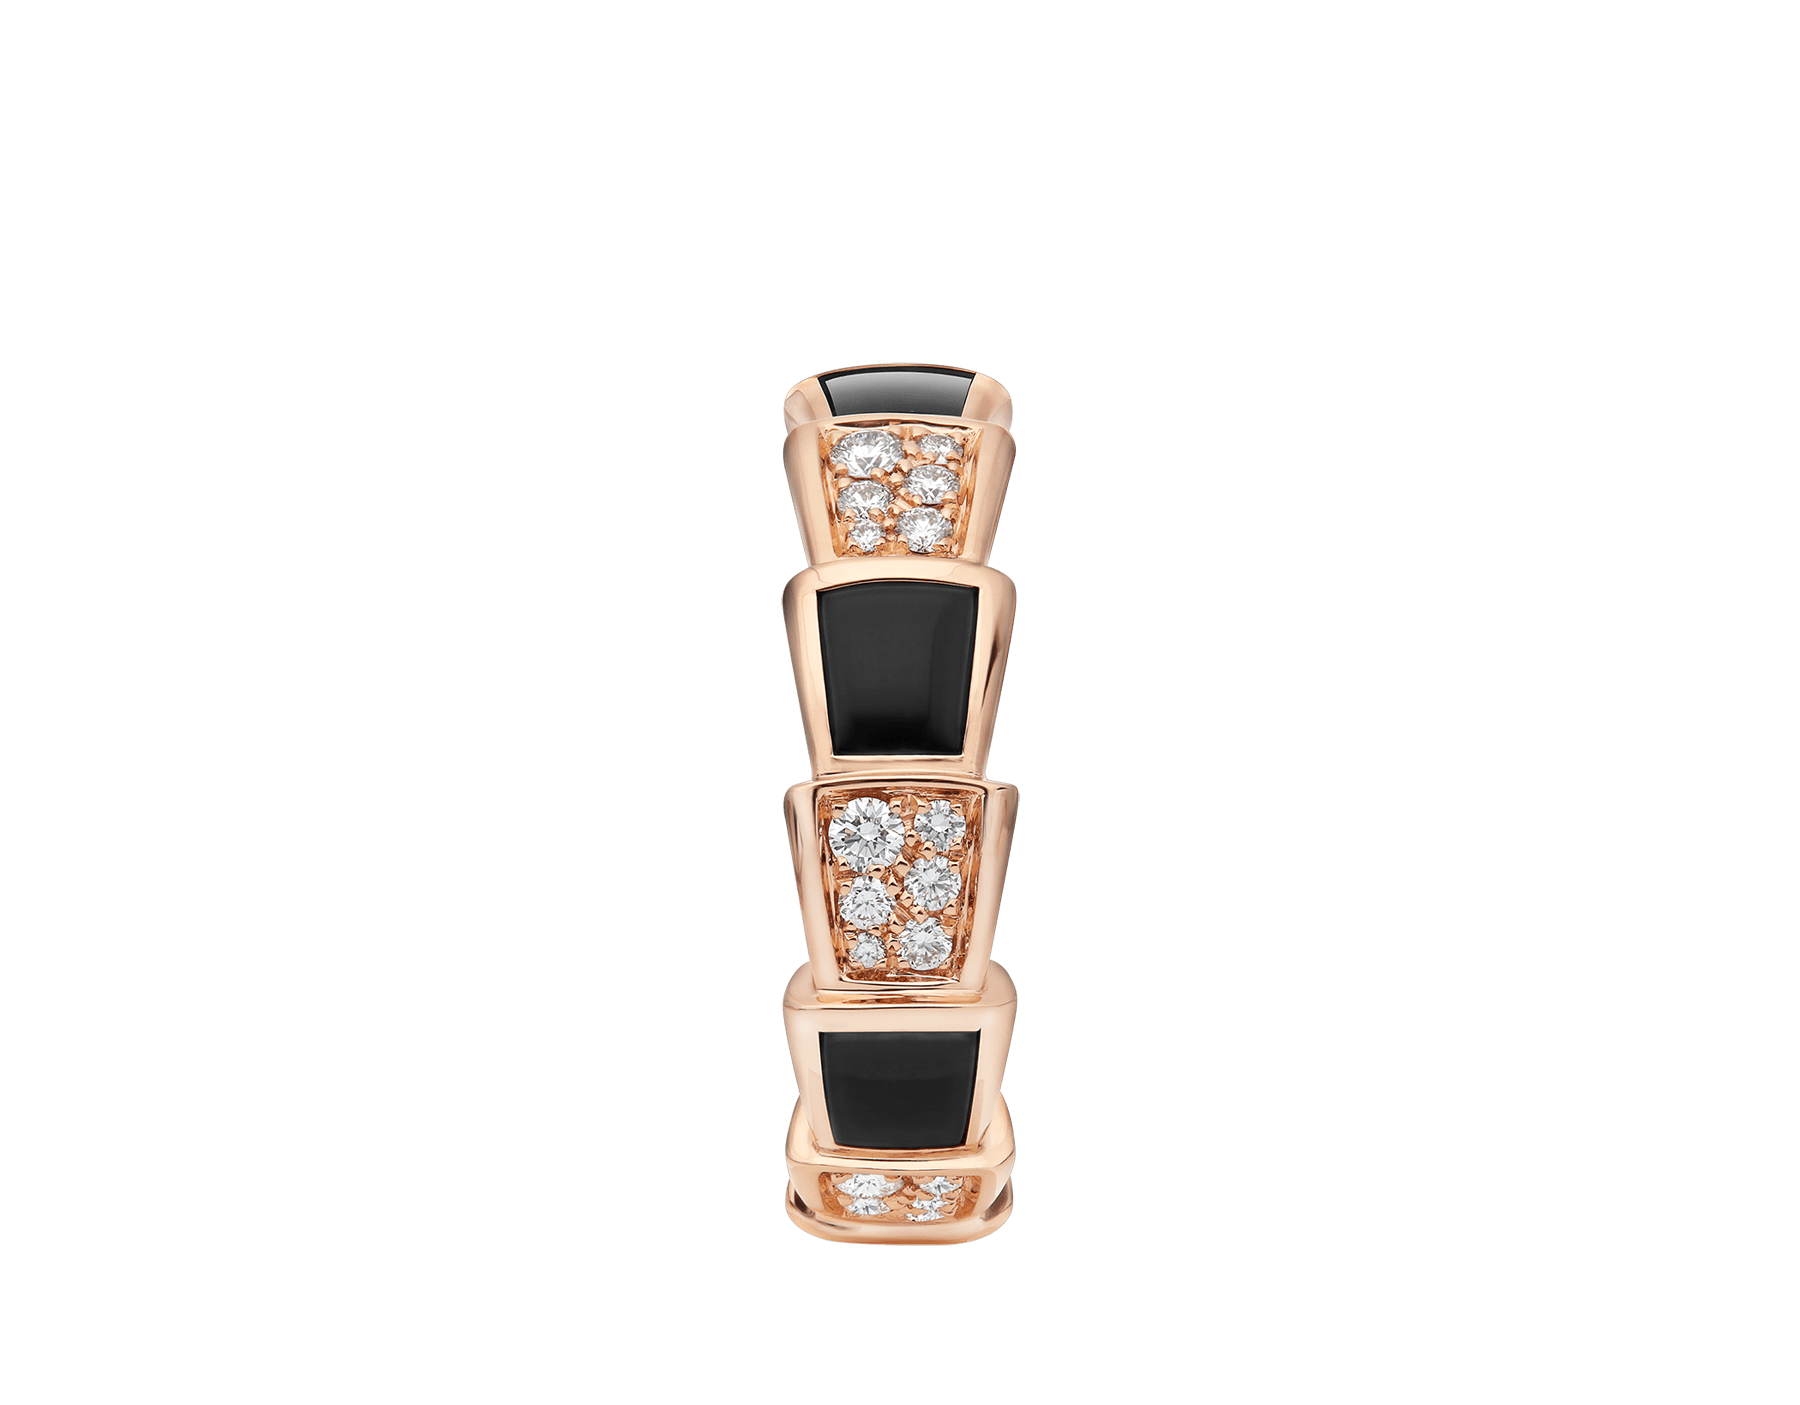 Serpenti Viper 18 kt rose gold ring set with onyx elements and pavé diamonds (0.34 ct) AN858711 image 2